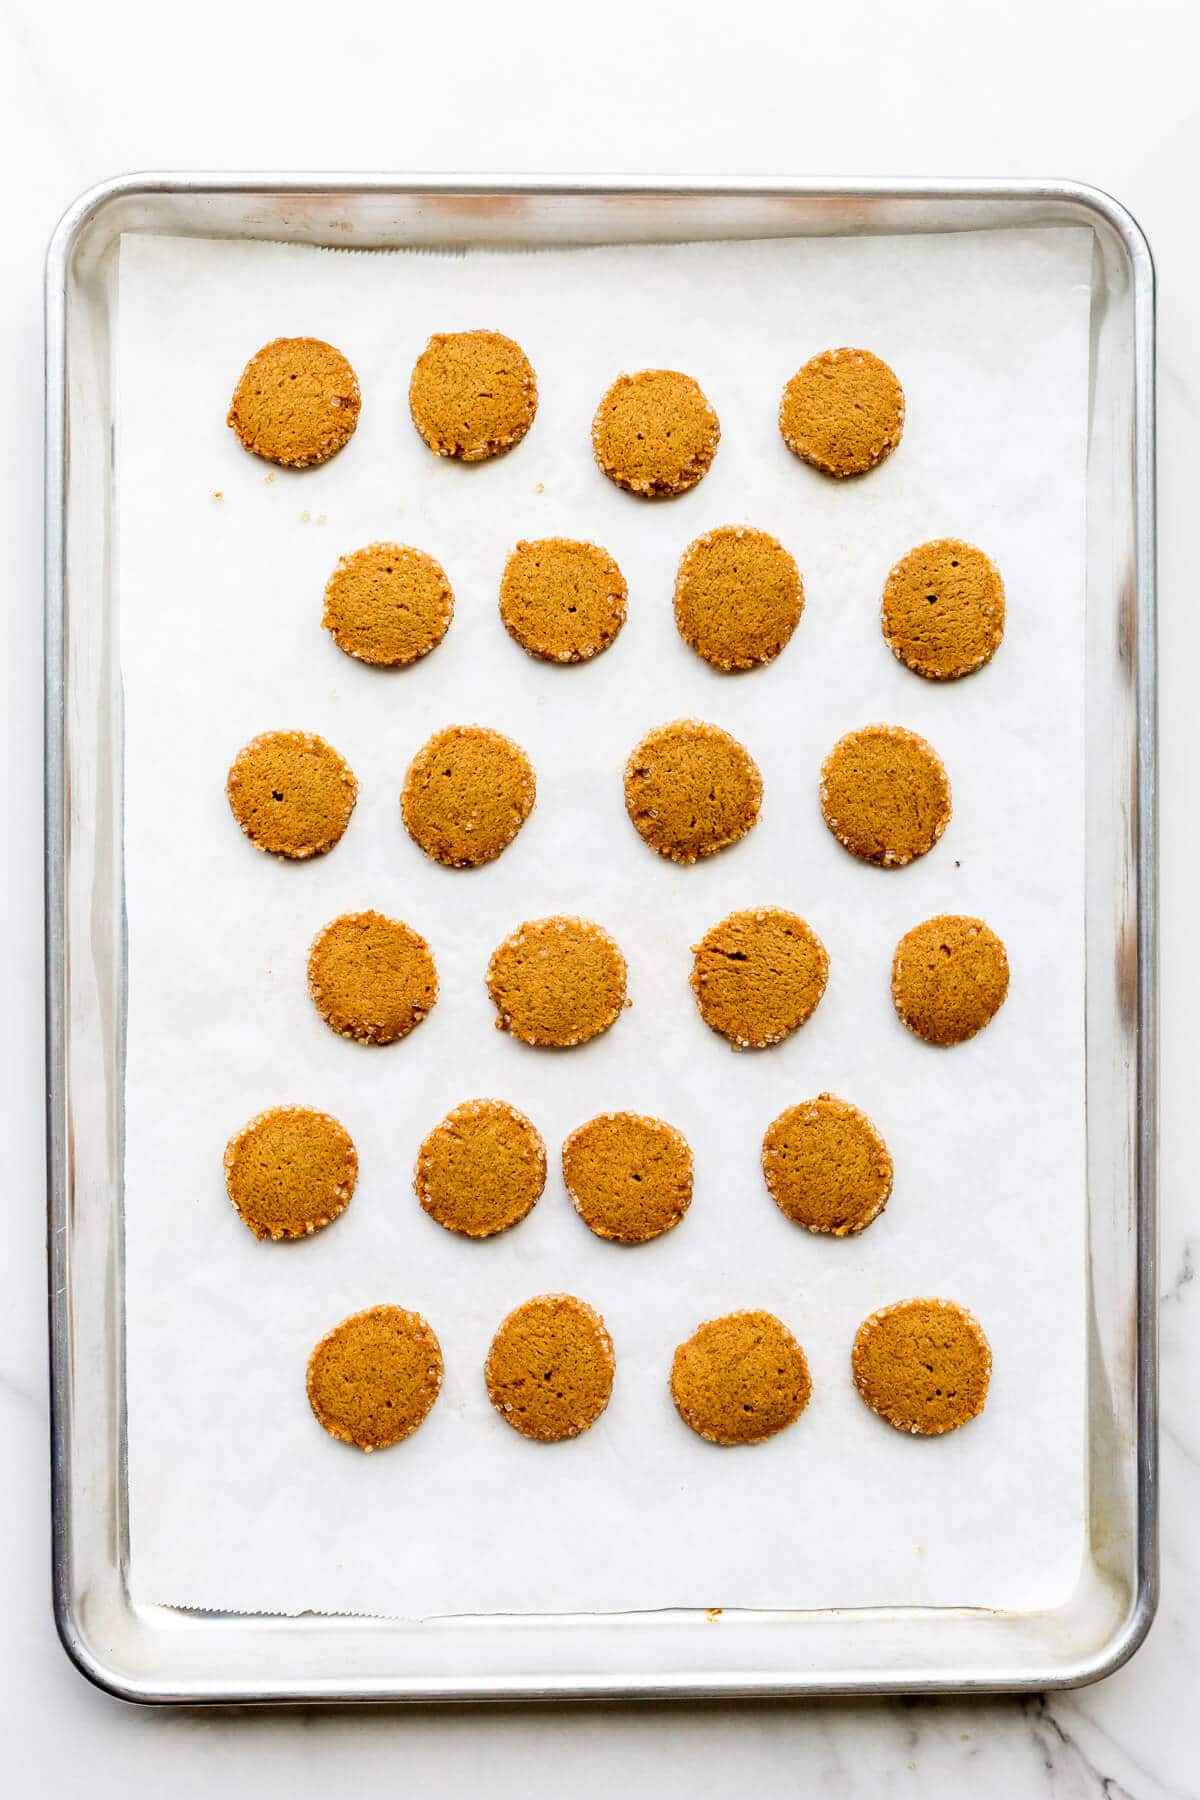 A sheet pan of freshly baked ginger coin cookies.